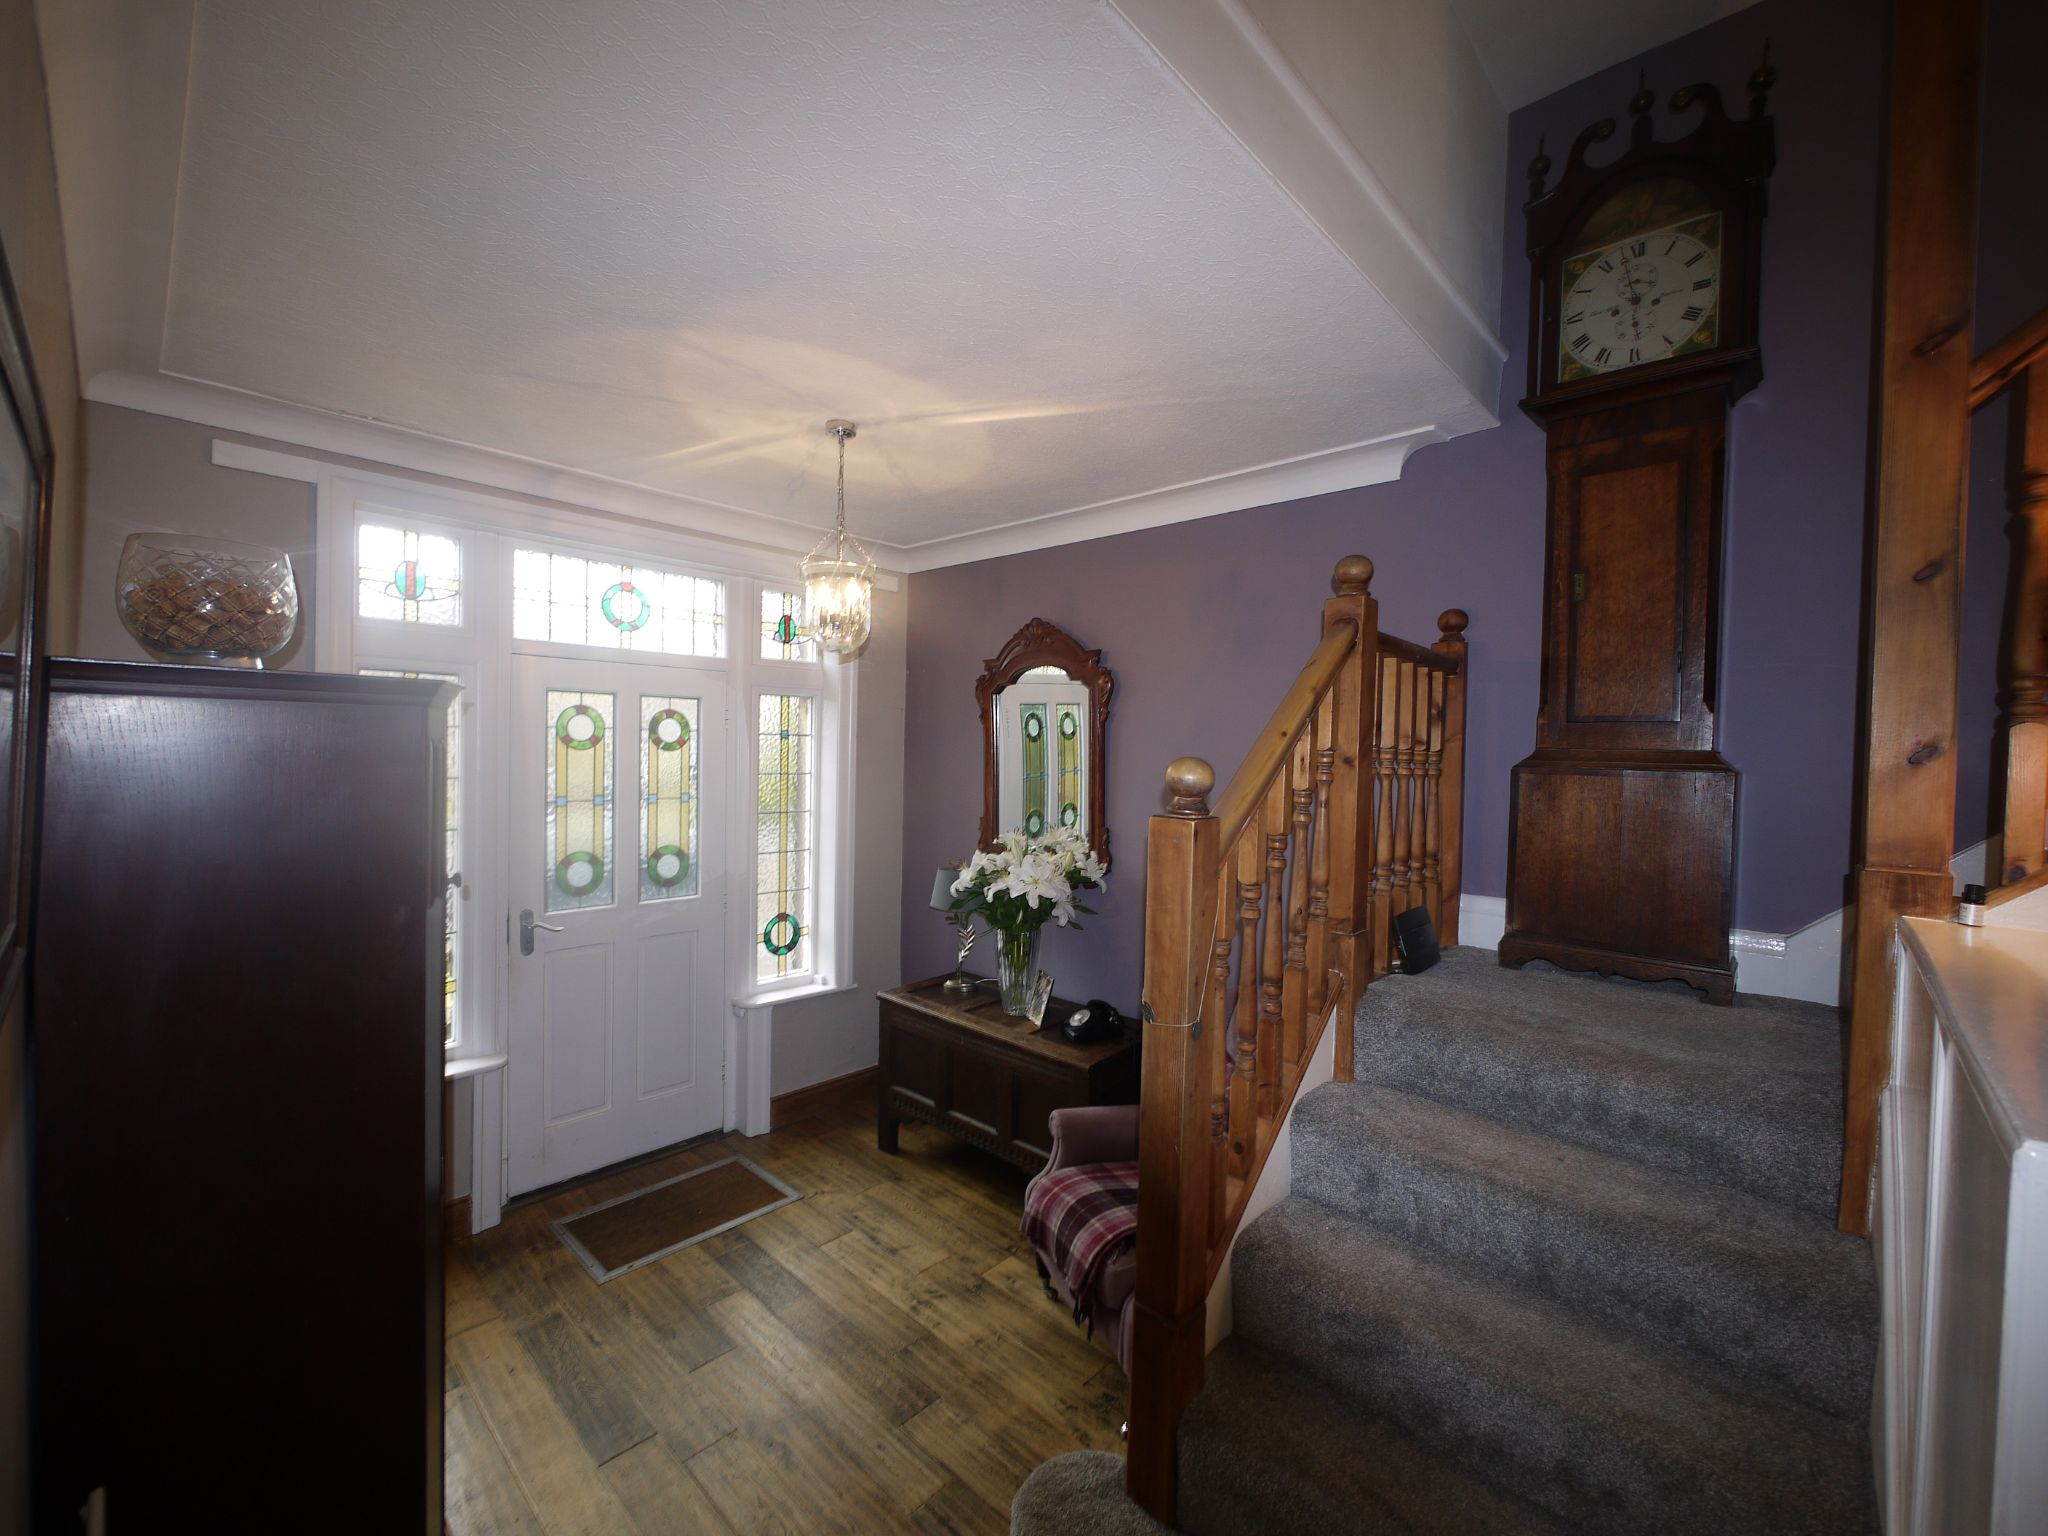 4 bedroom semi-detached house SSTC in Halifax - Entrance Hall.